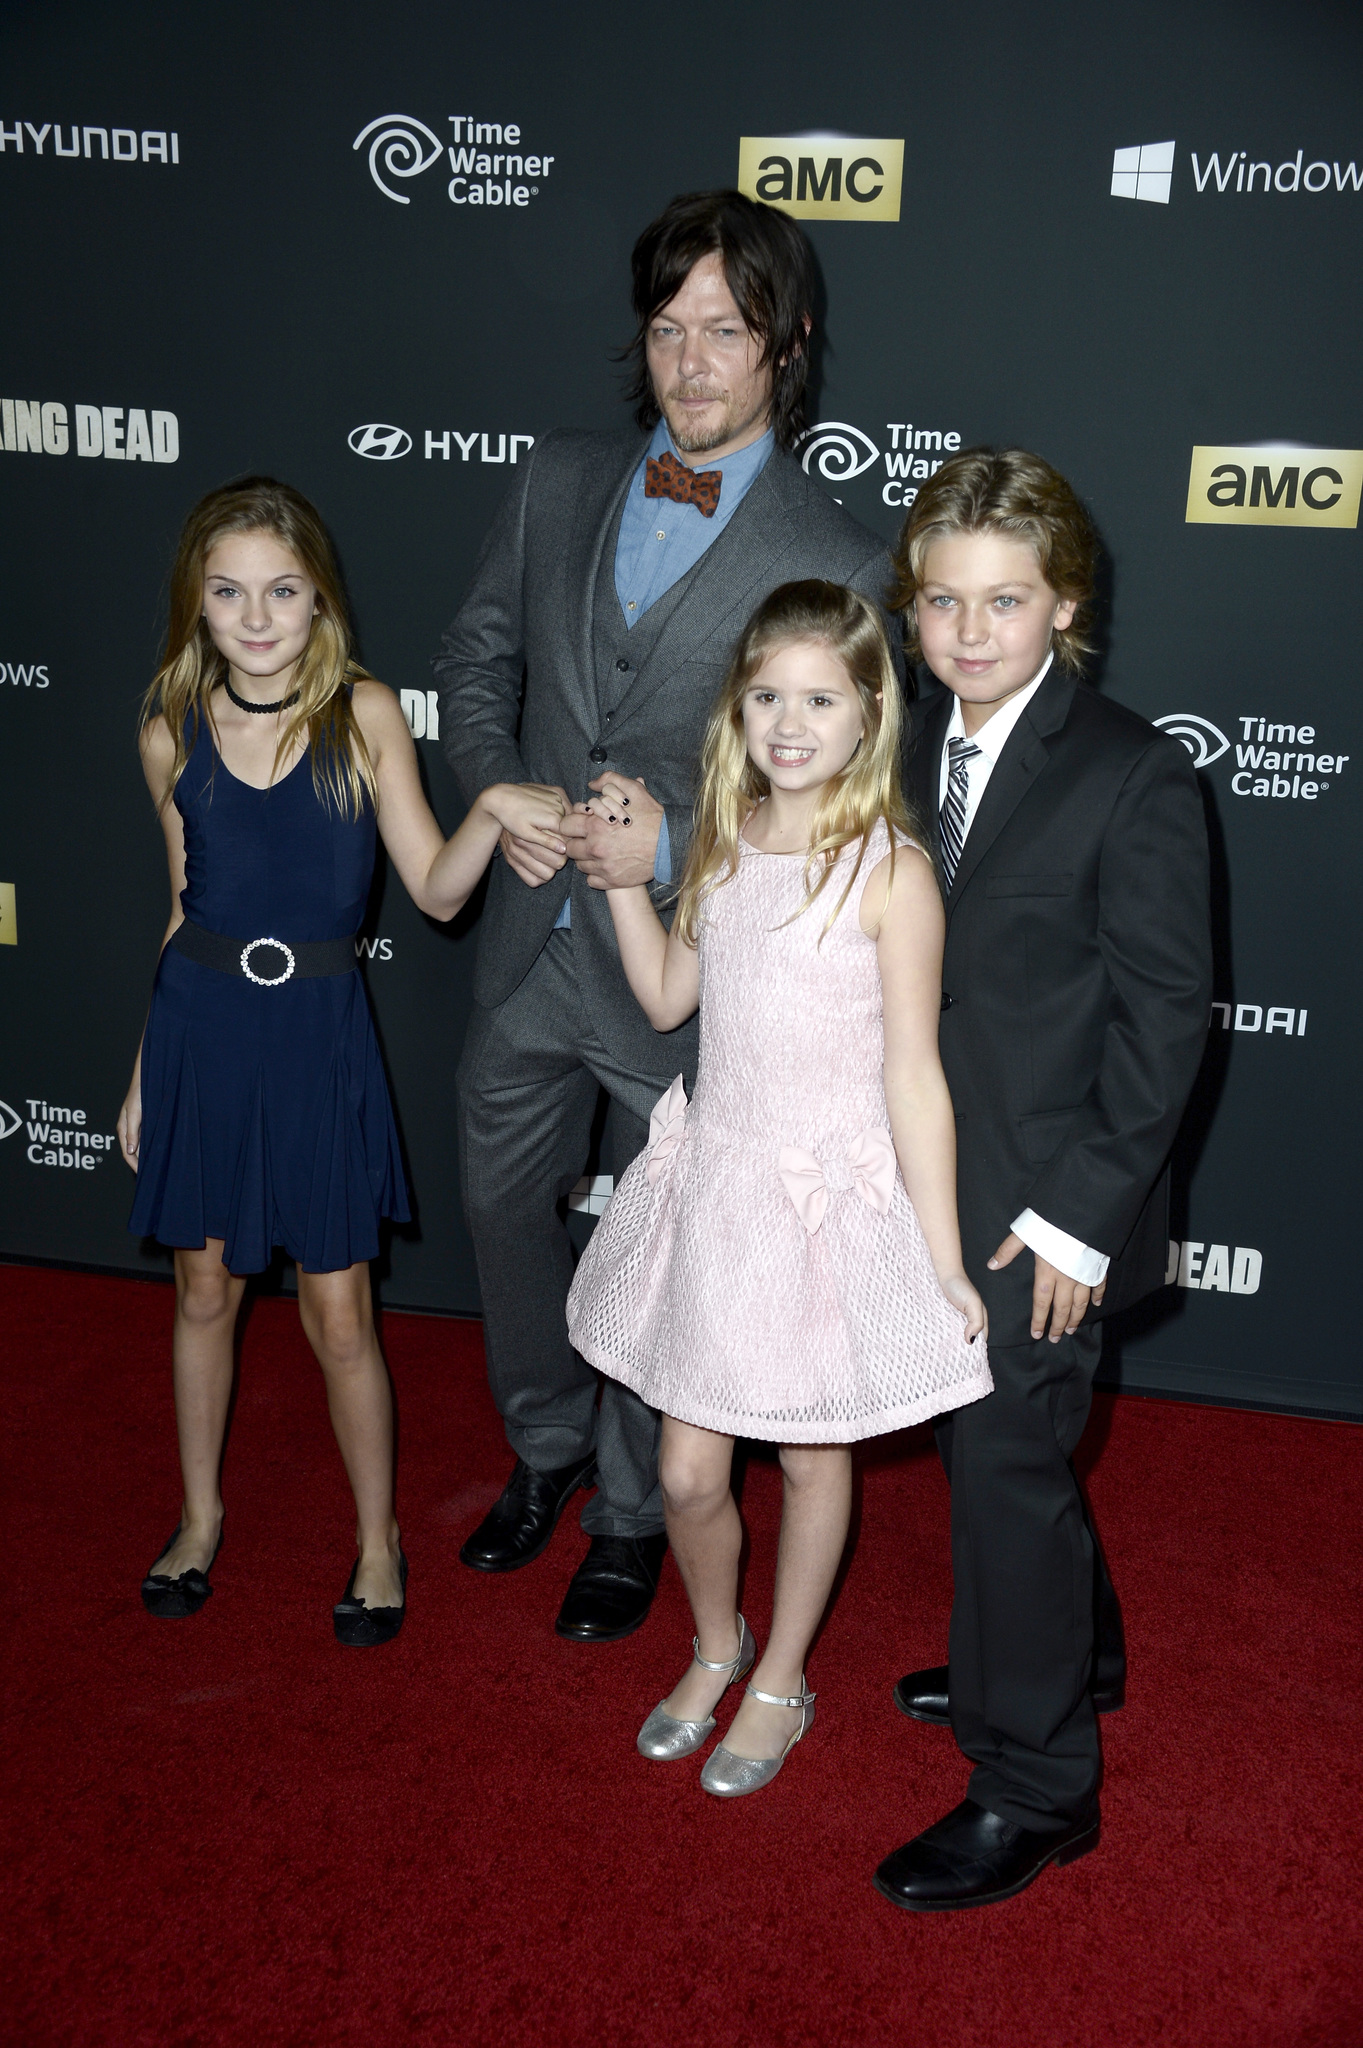 Norman Reedus, Kyla Kenedy, and Brighton Sharbino at an event for The Walking Dead (2010)